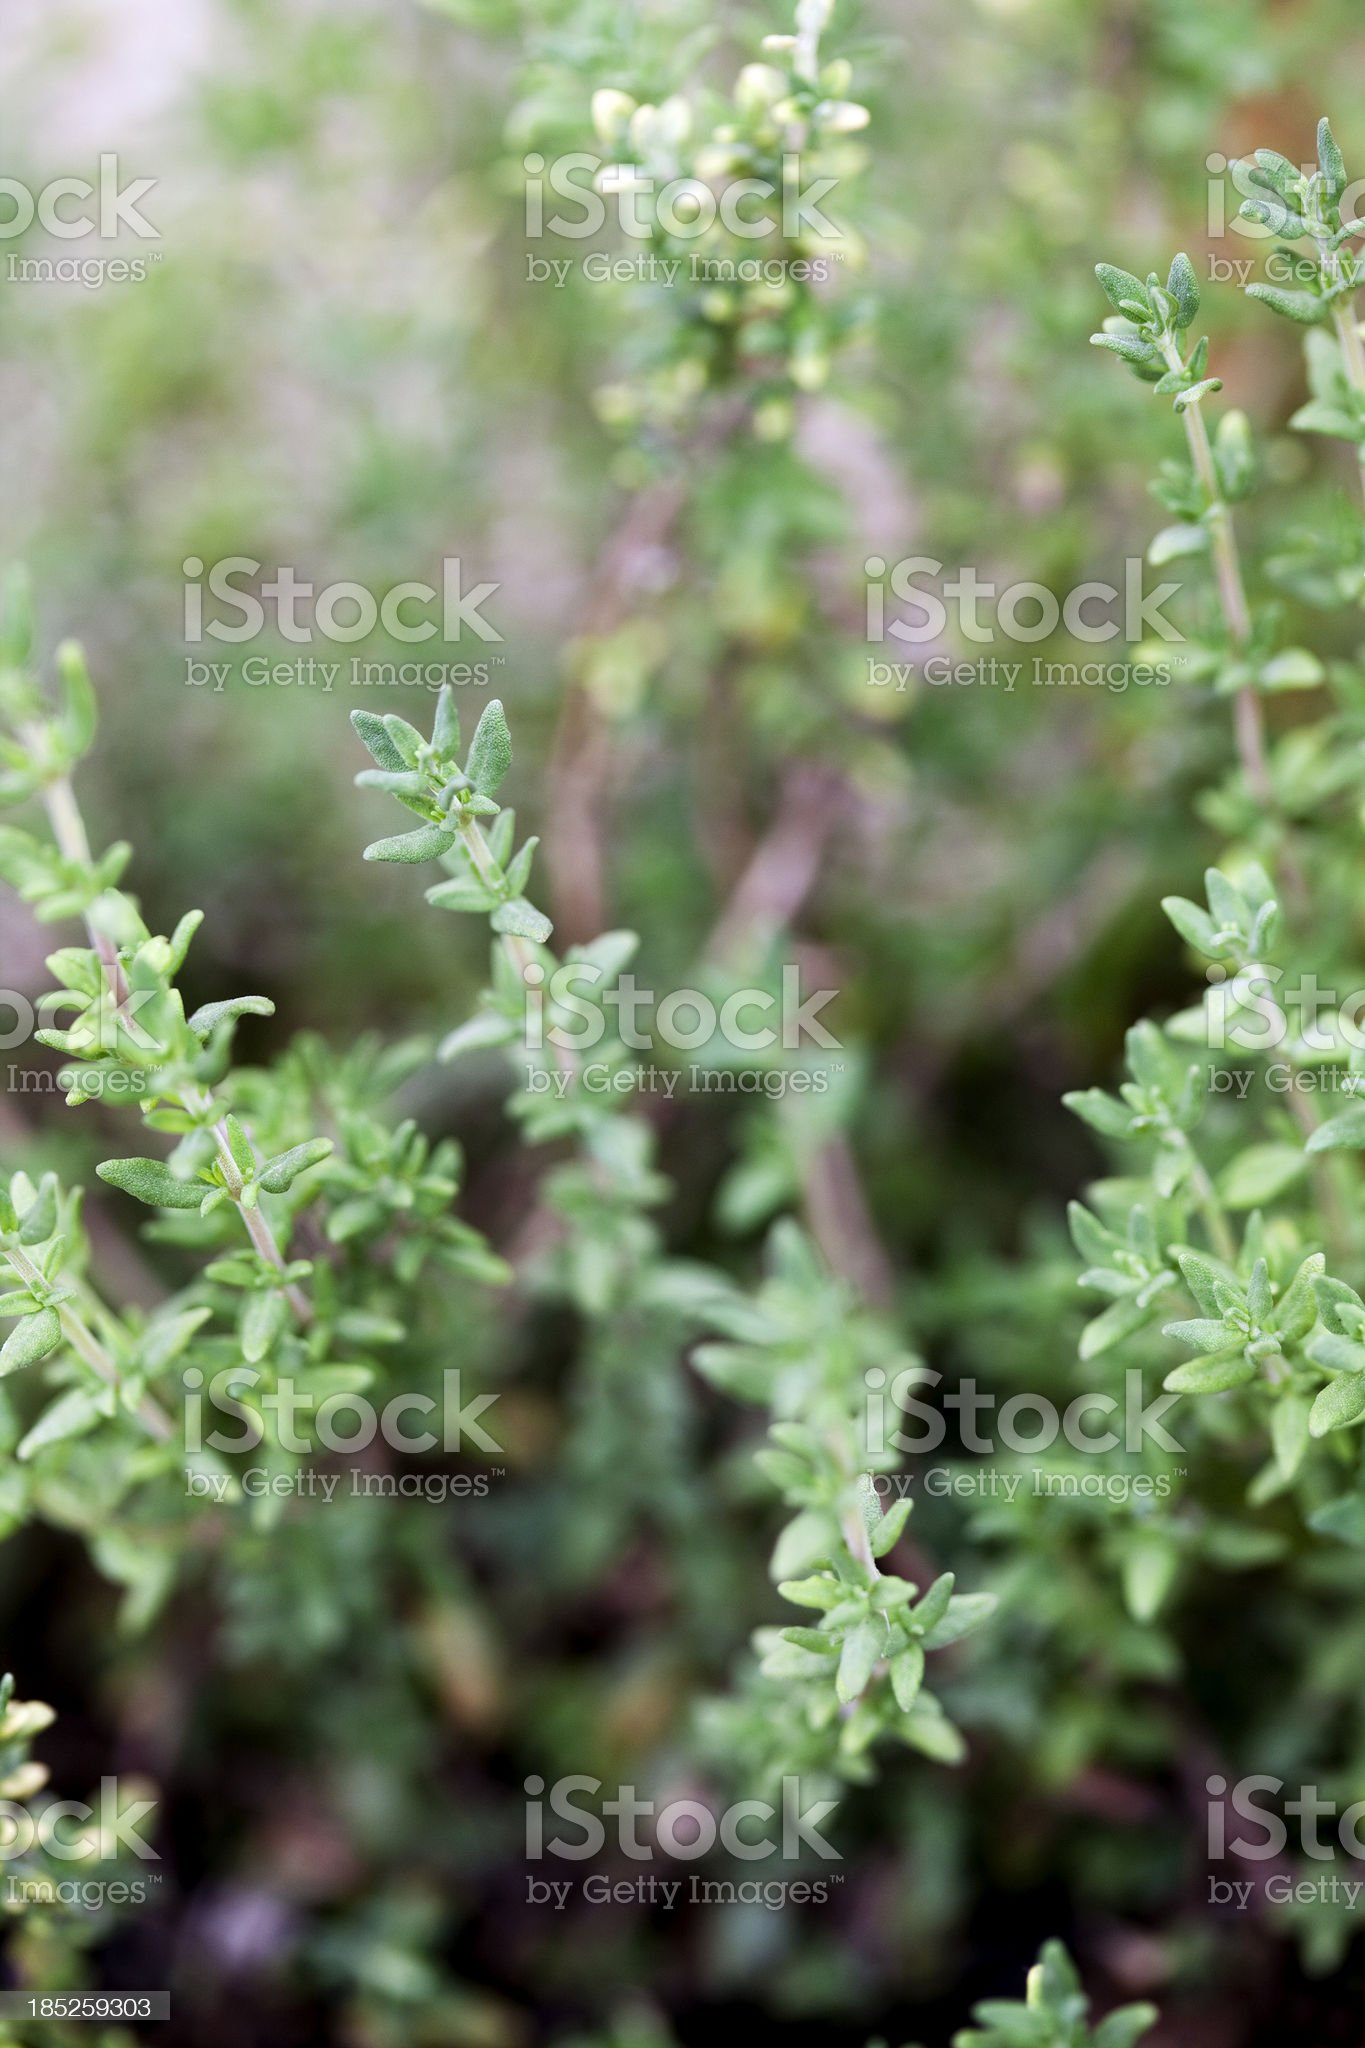 Thyme Plant Close-Up royalty-free stock photo